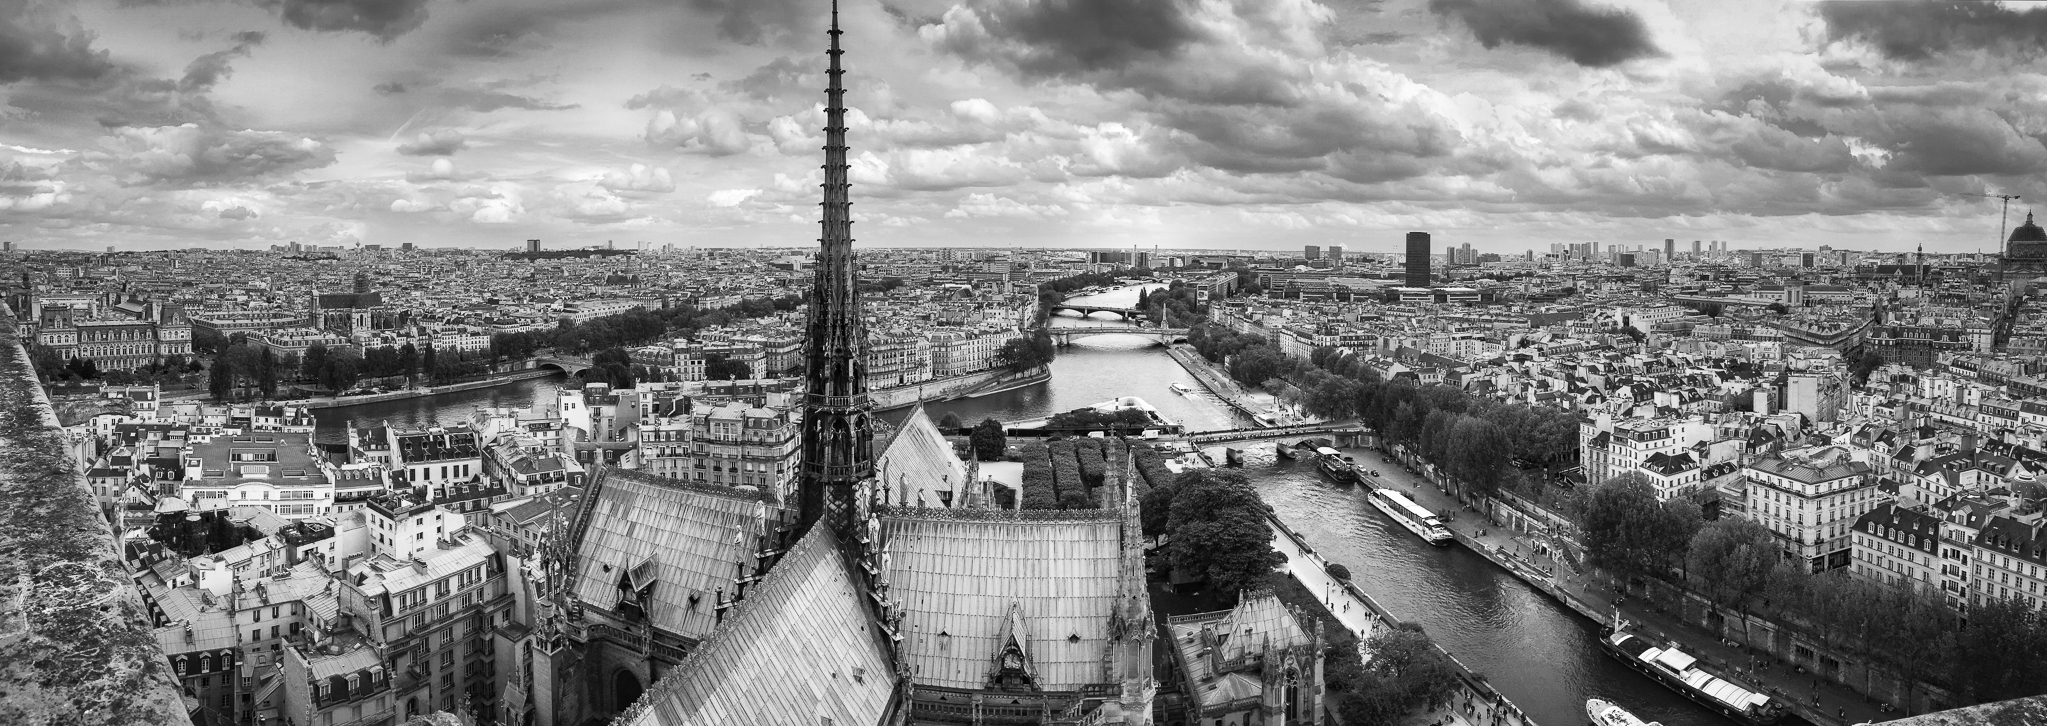 Panoramic view of the cityscape of Paris as seen from the top of Notre-Dame Cathedral.